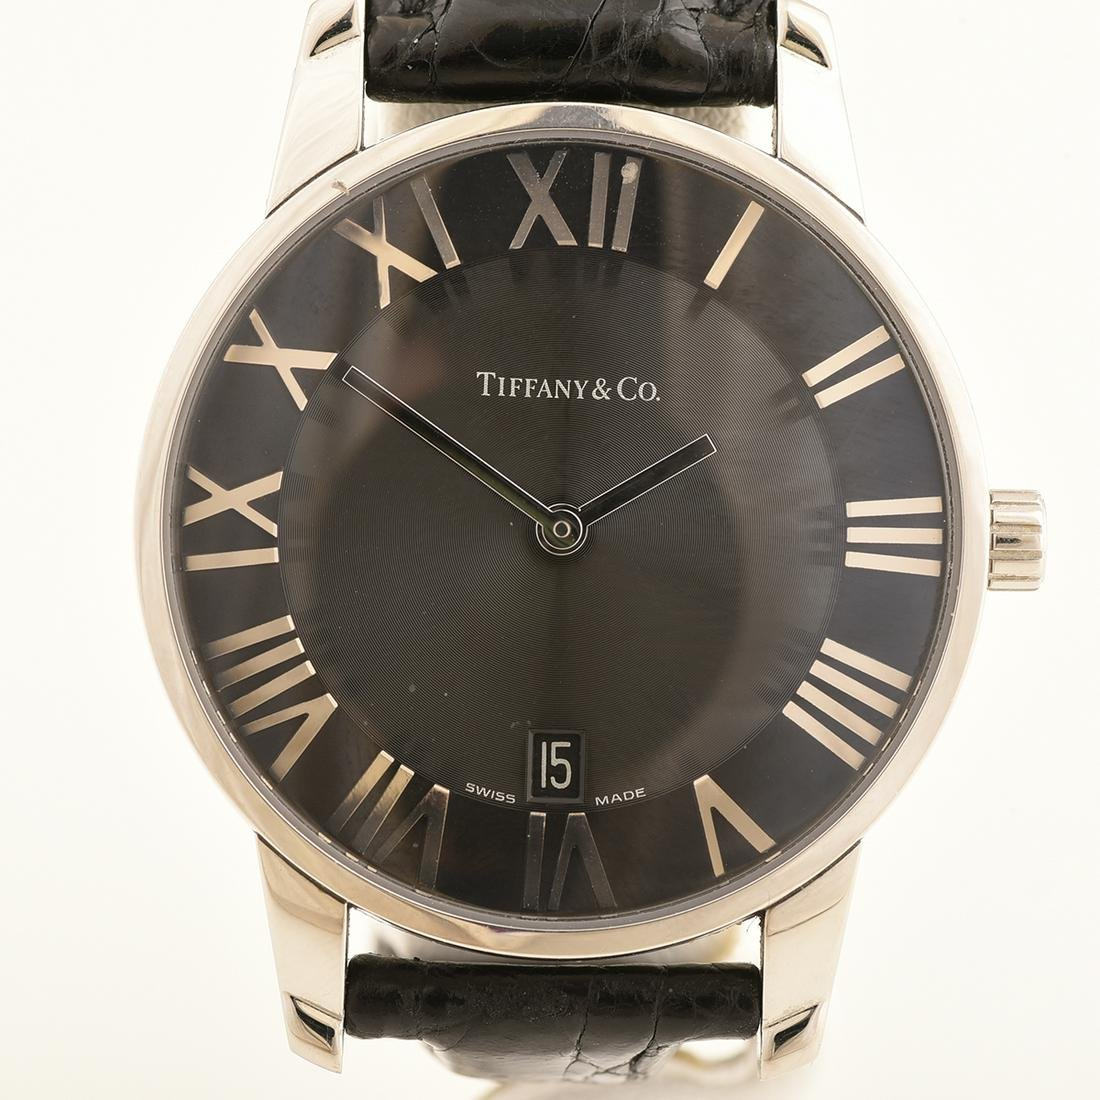 Tiffany & Co. Atlas Stainless Steel, Leather